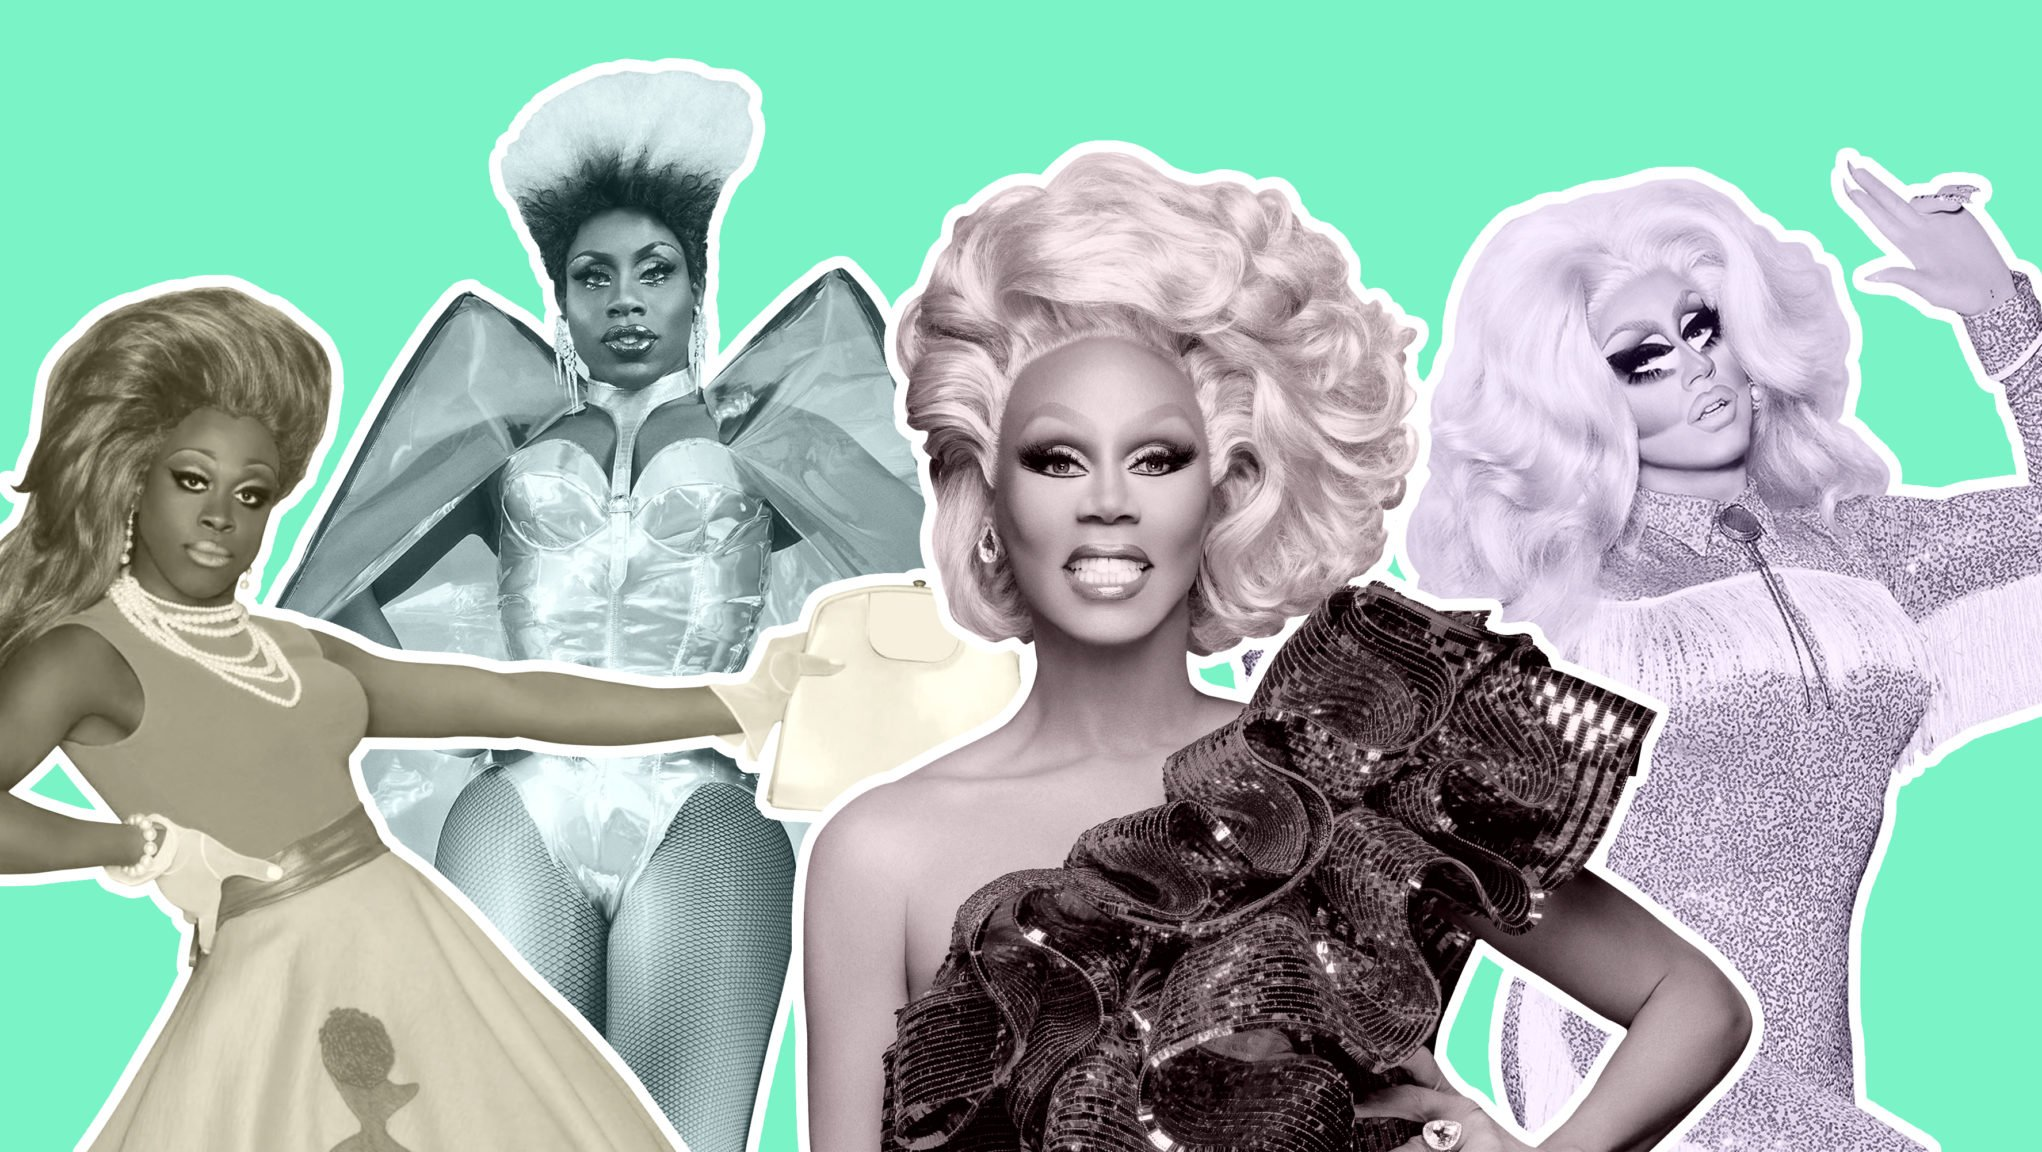 In the image for the article, Is 'RuPaul's Secret Celebrity Drag Race' worth your time?, we see Bob The Drag Queen, Monet X Change, RuPaul and Trixie Mattel